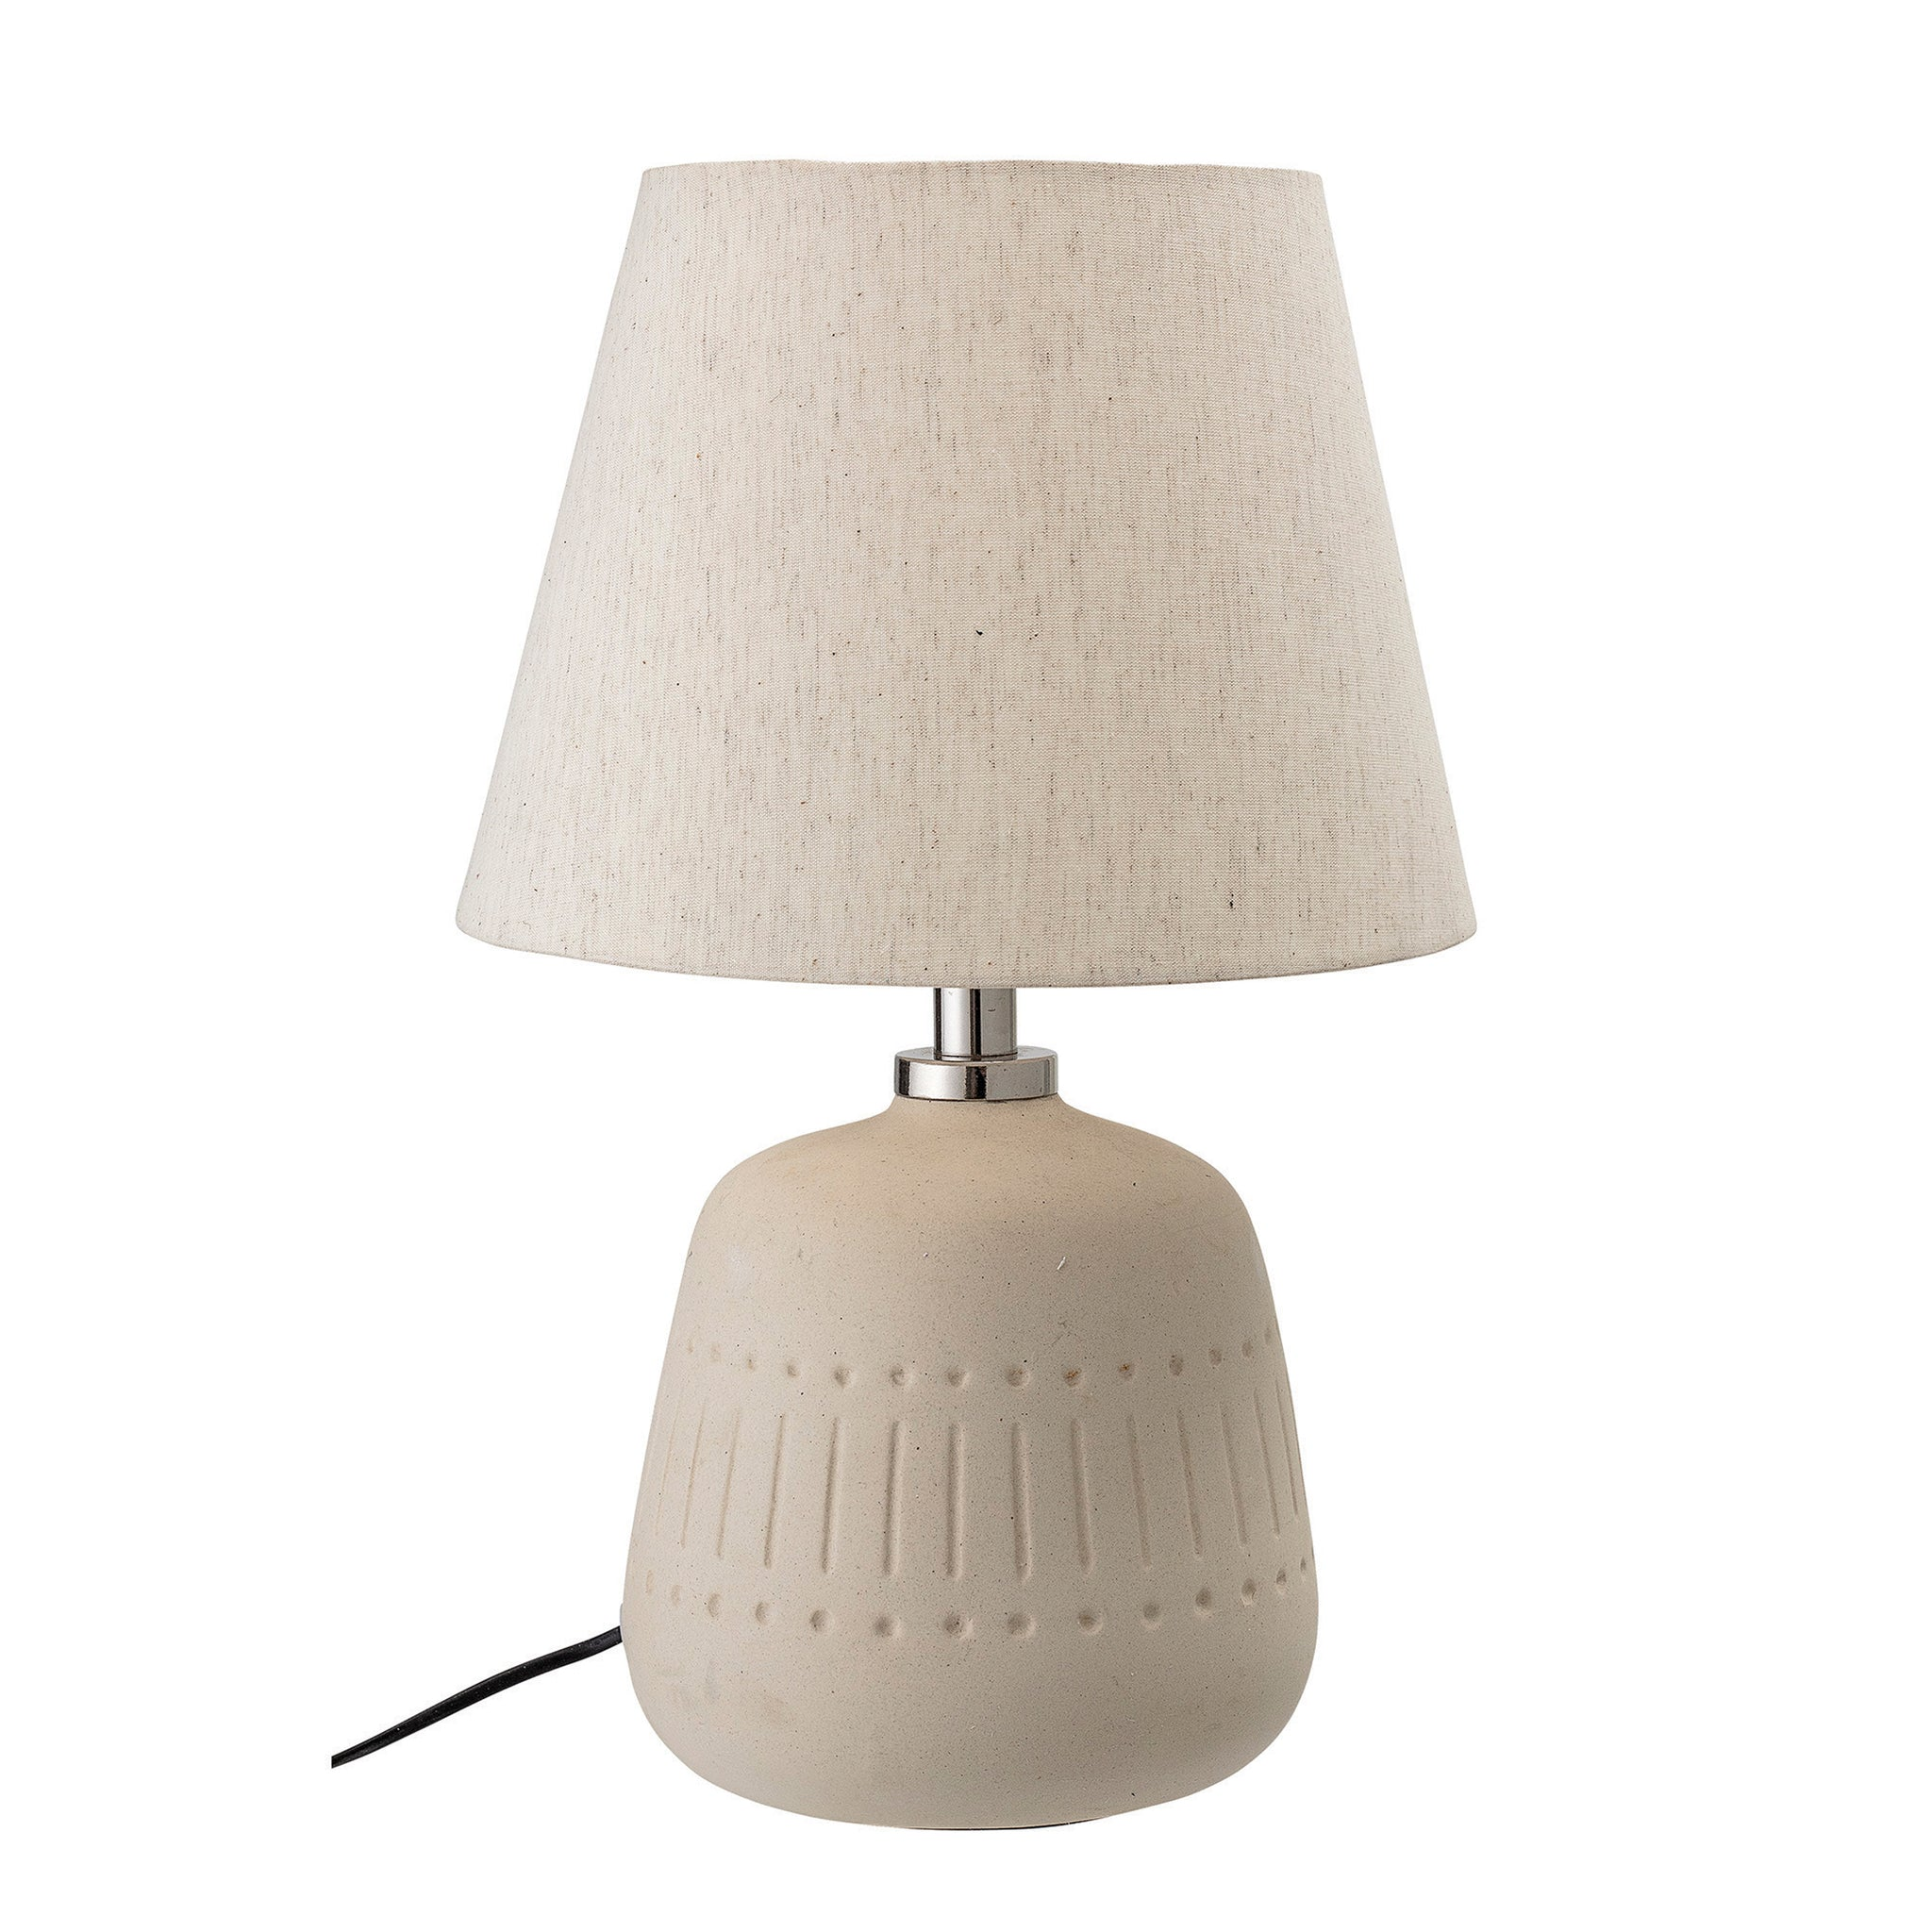 Cream Ceramic Lamp with Debossed Stripes & Circles and Fabric Shade